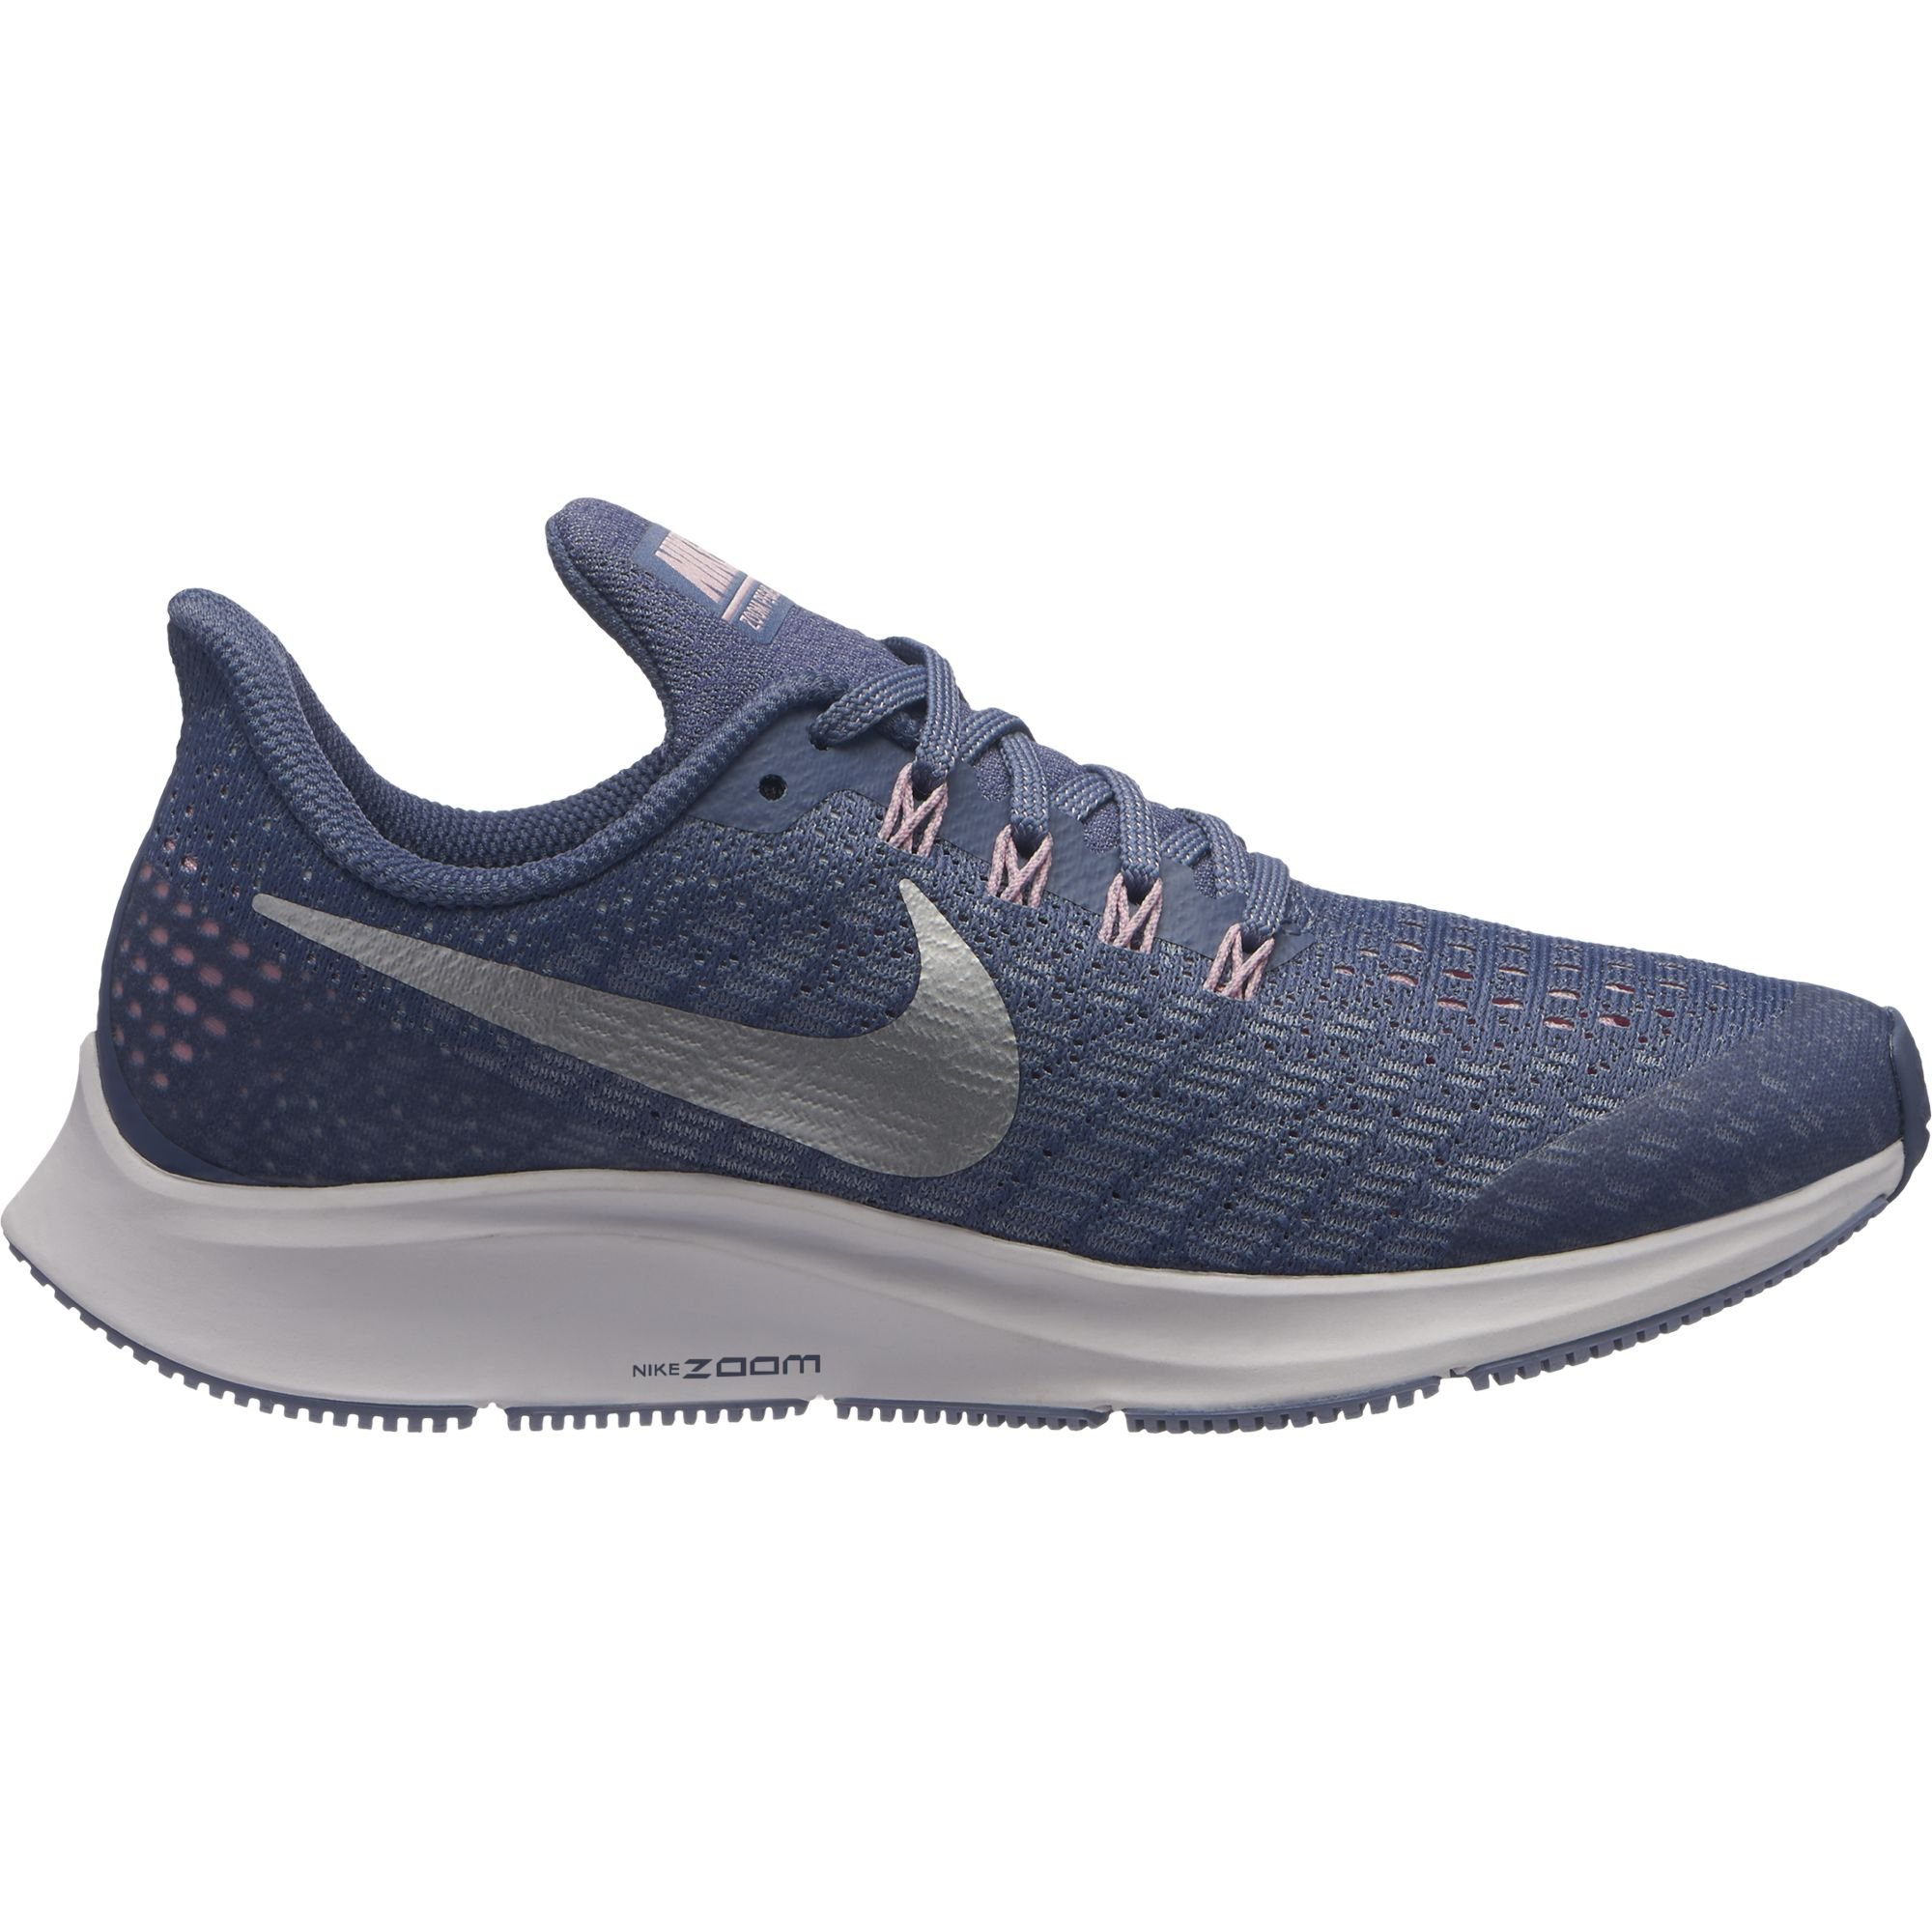 Nike Girl's Air Zoom Pegasus 35 Running Shoe Diffused Blue/Metallic Silver Size 2 M US